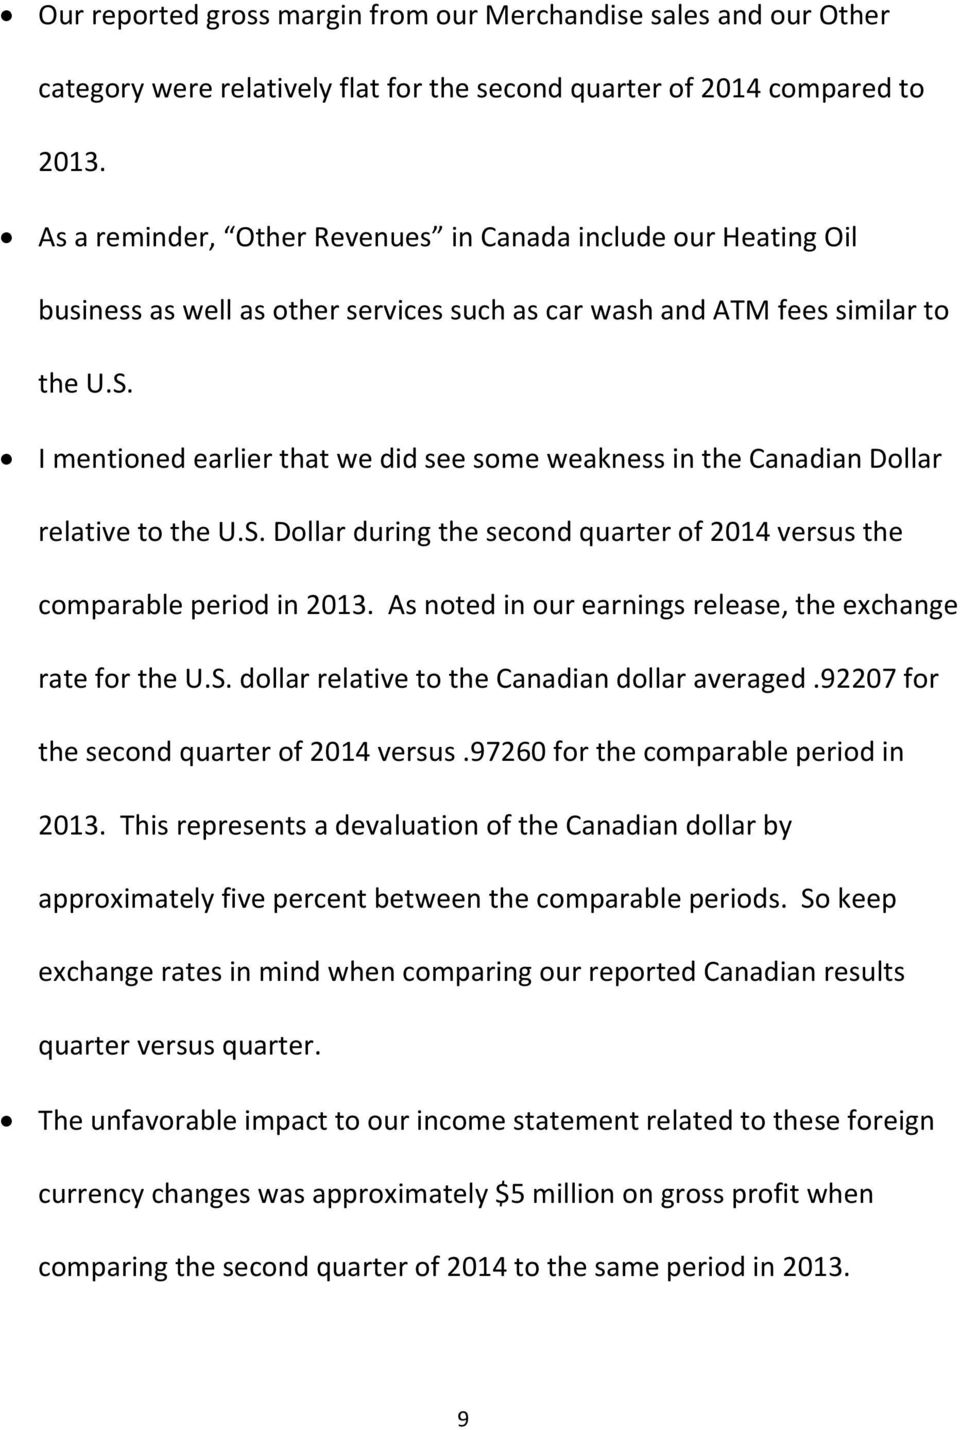 I mentioned earlier that we did see some weakness in the Canadian Dollar relative to the U.S. Dollar during the second quarter of 2014 versus the comparable period in 2013.